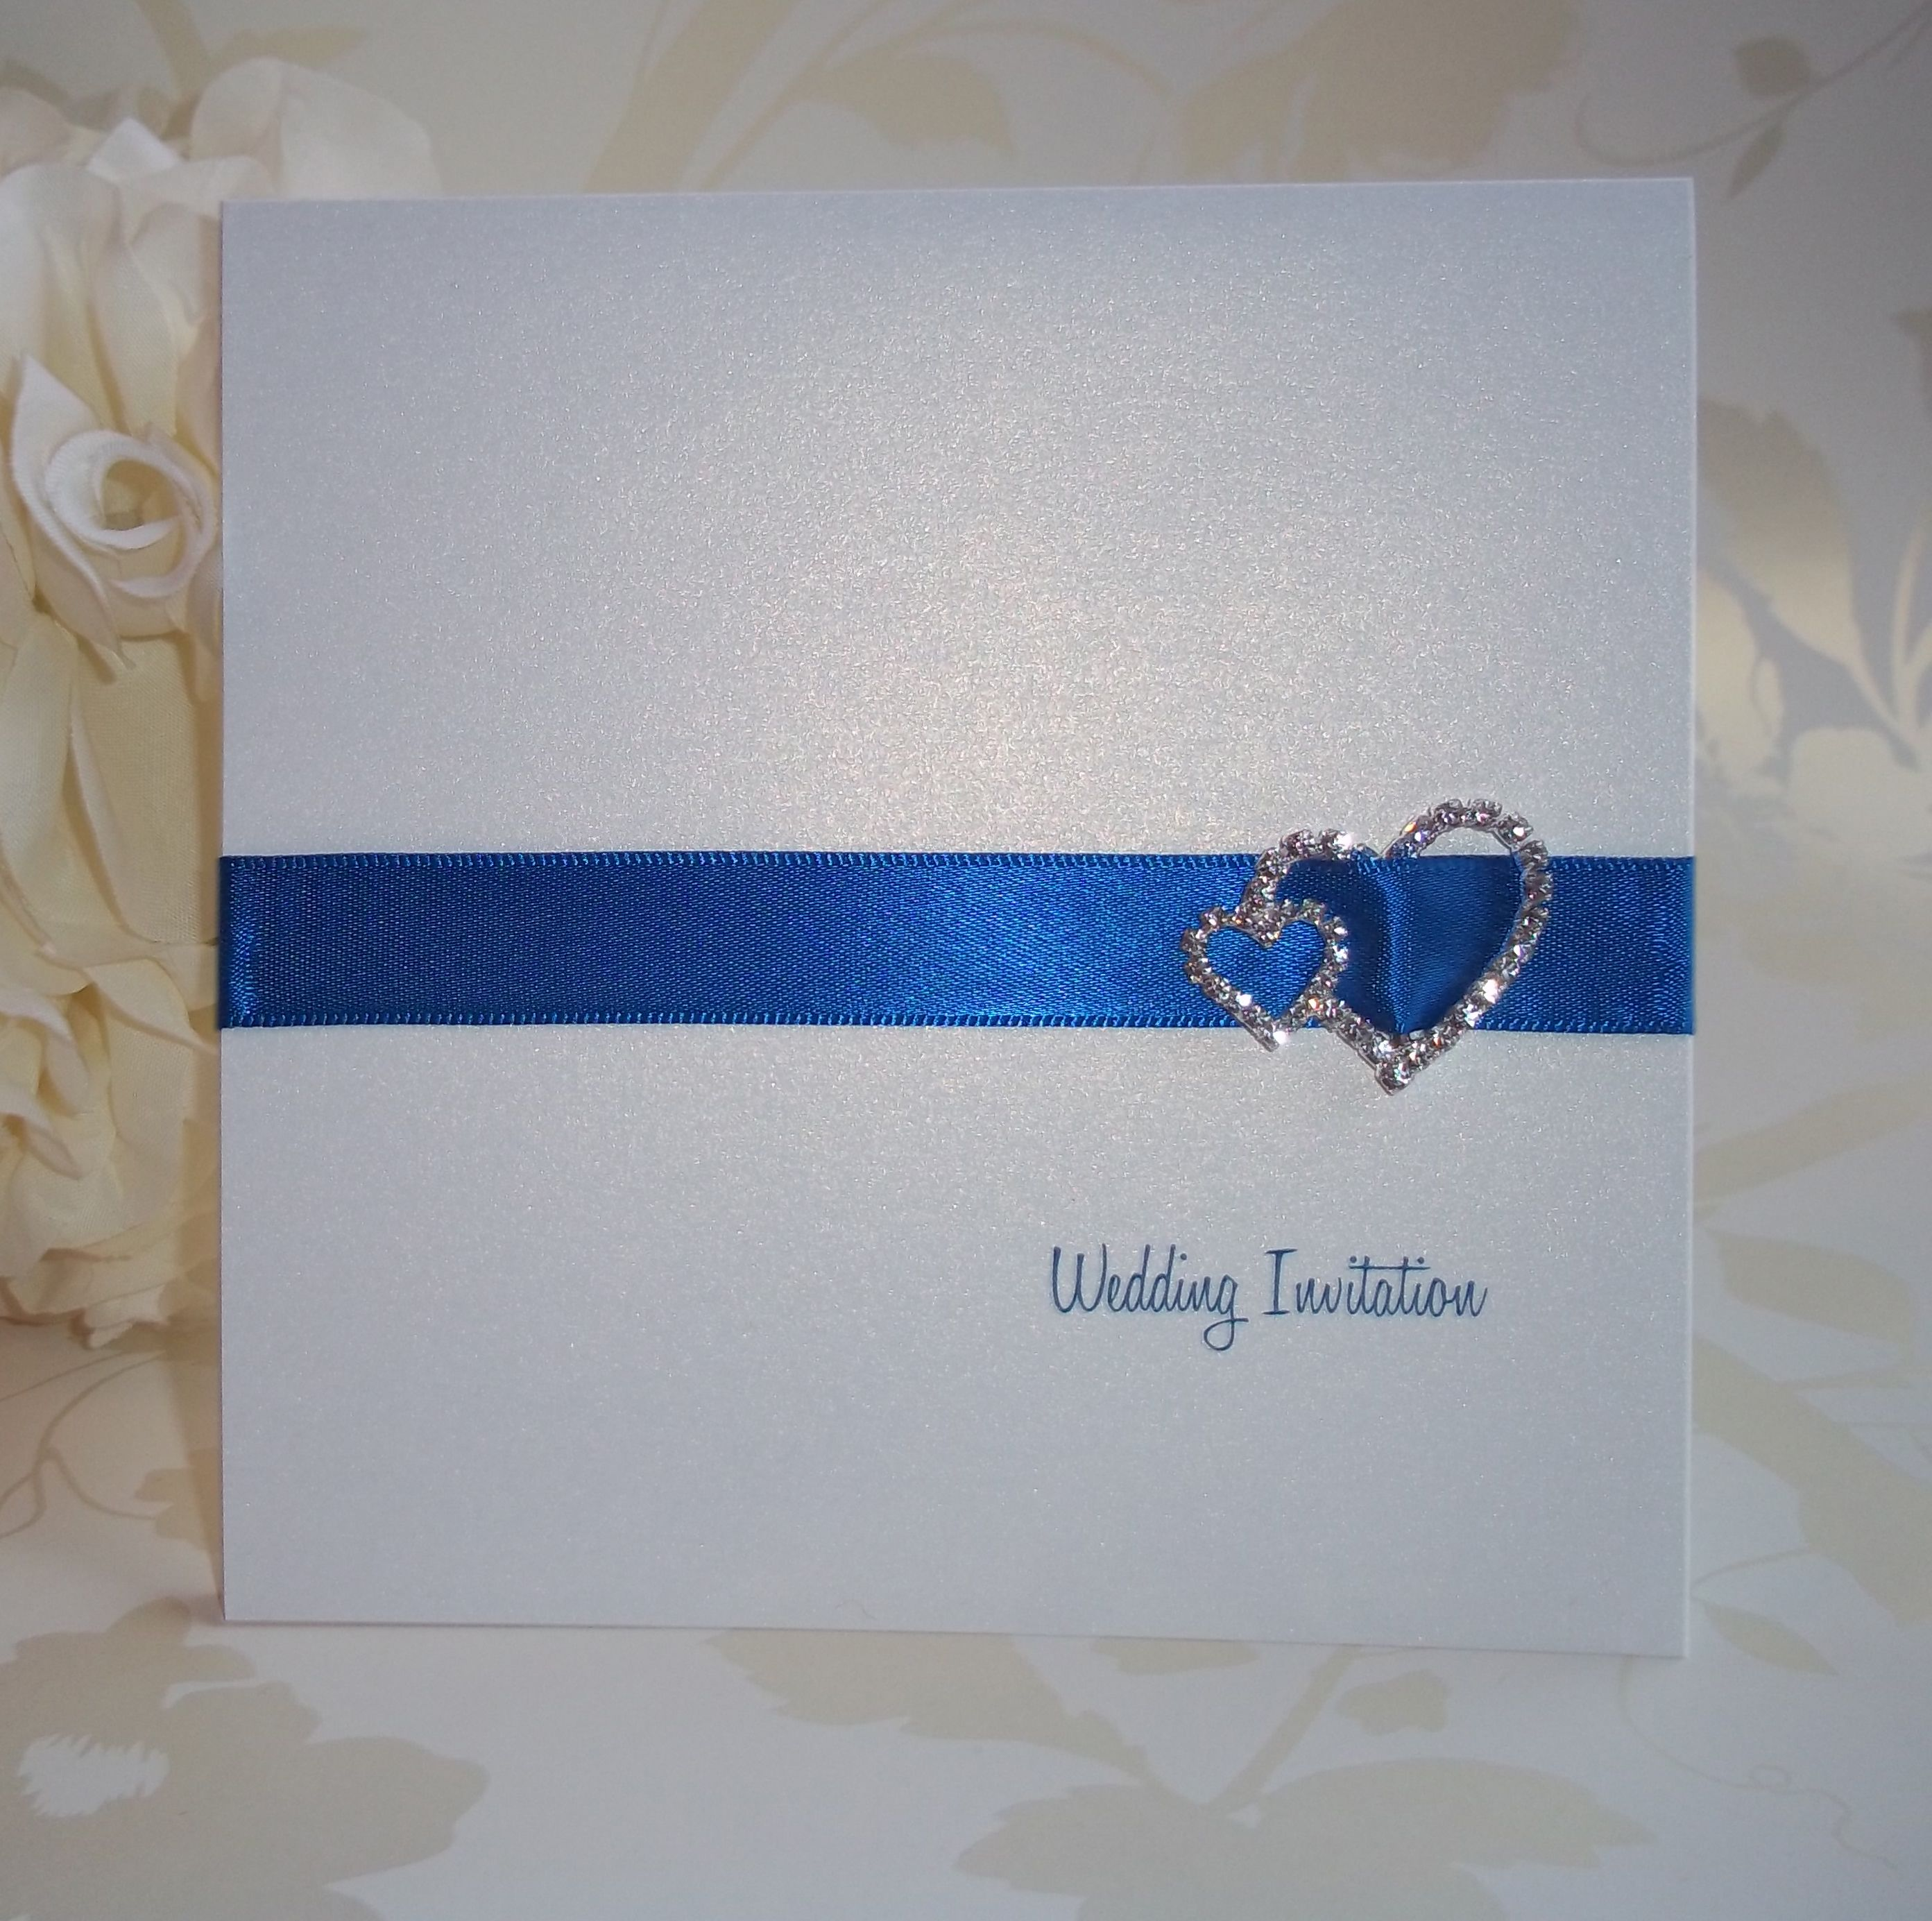 sample of wedding invitation letter%0A Elegance Wedding Invitation  Royal Blue Ribbon with Double Heart Buckle